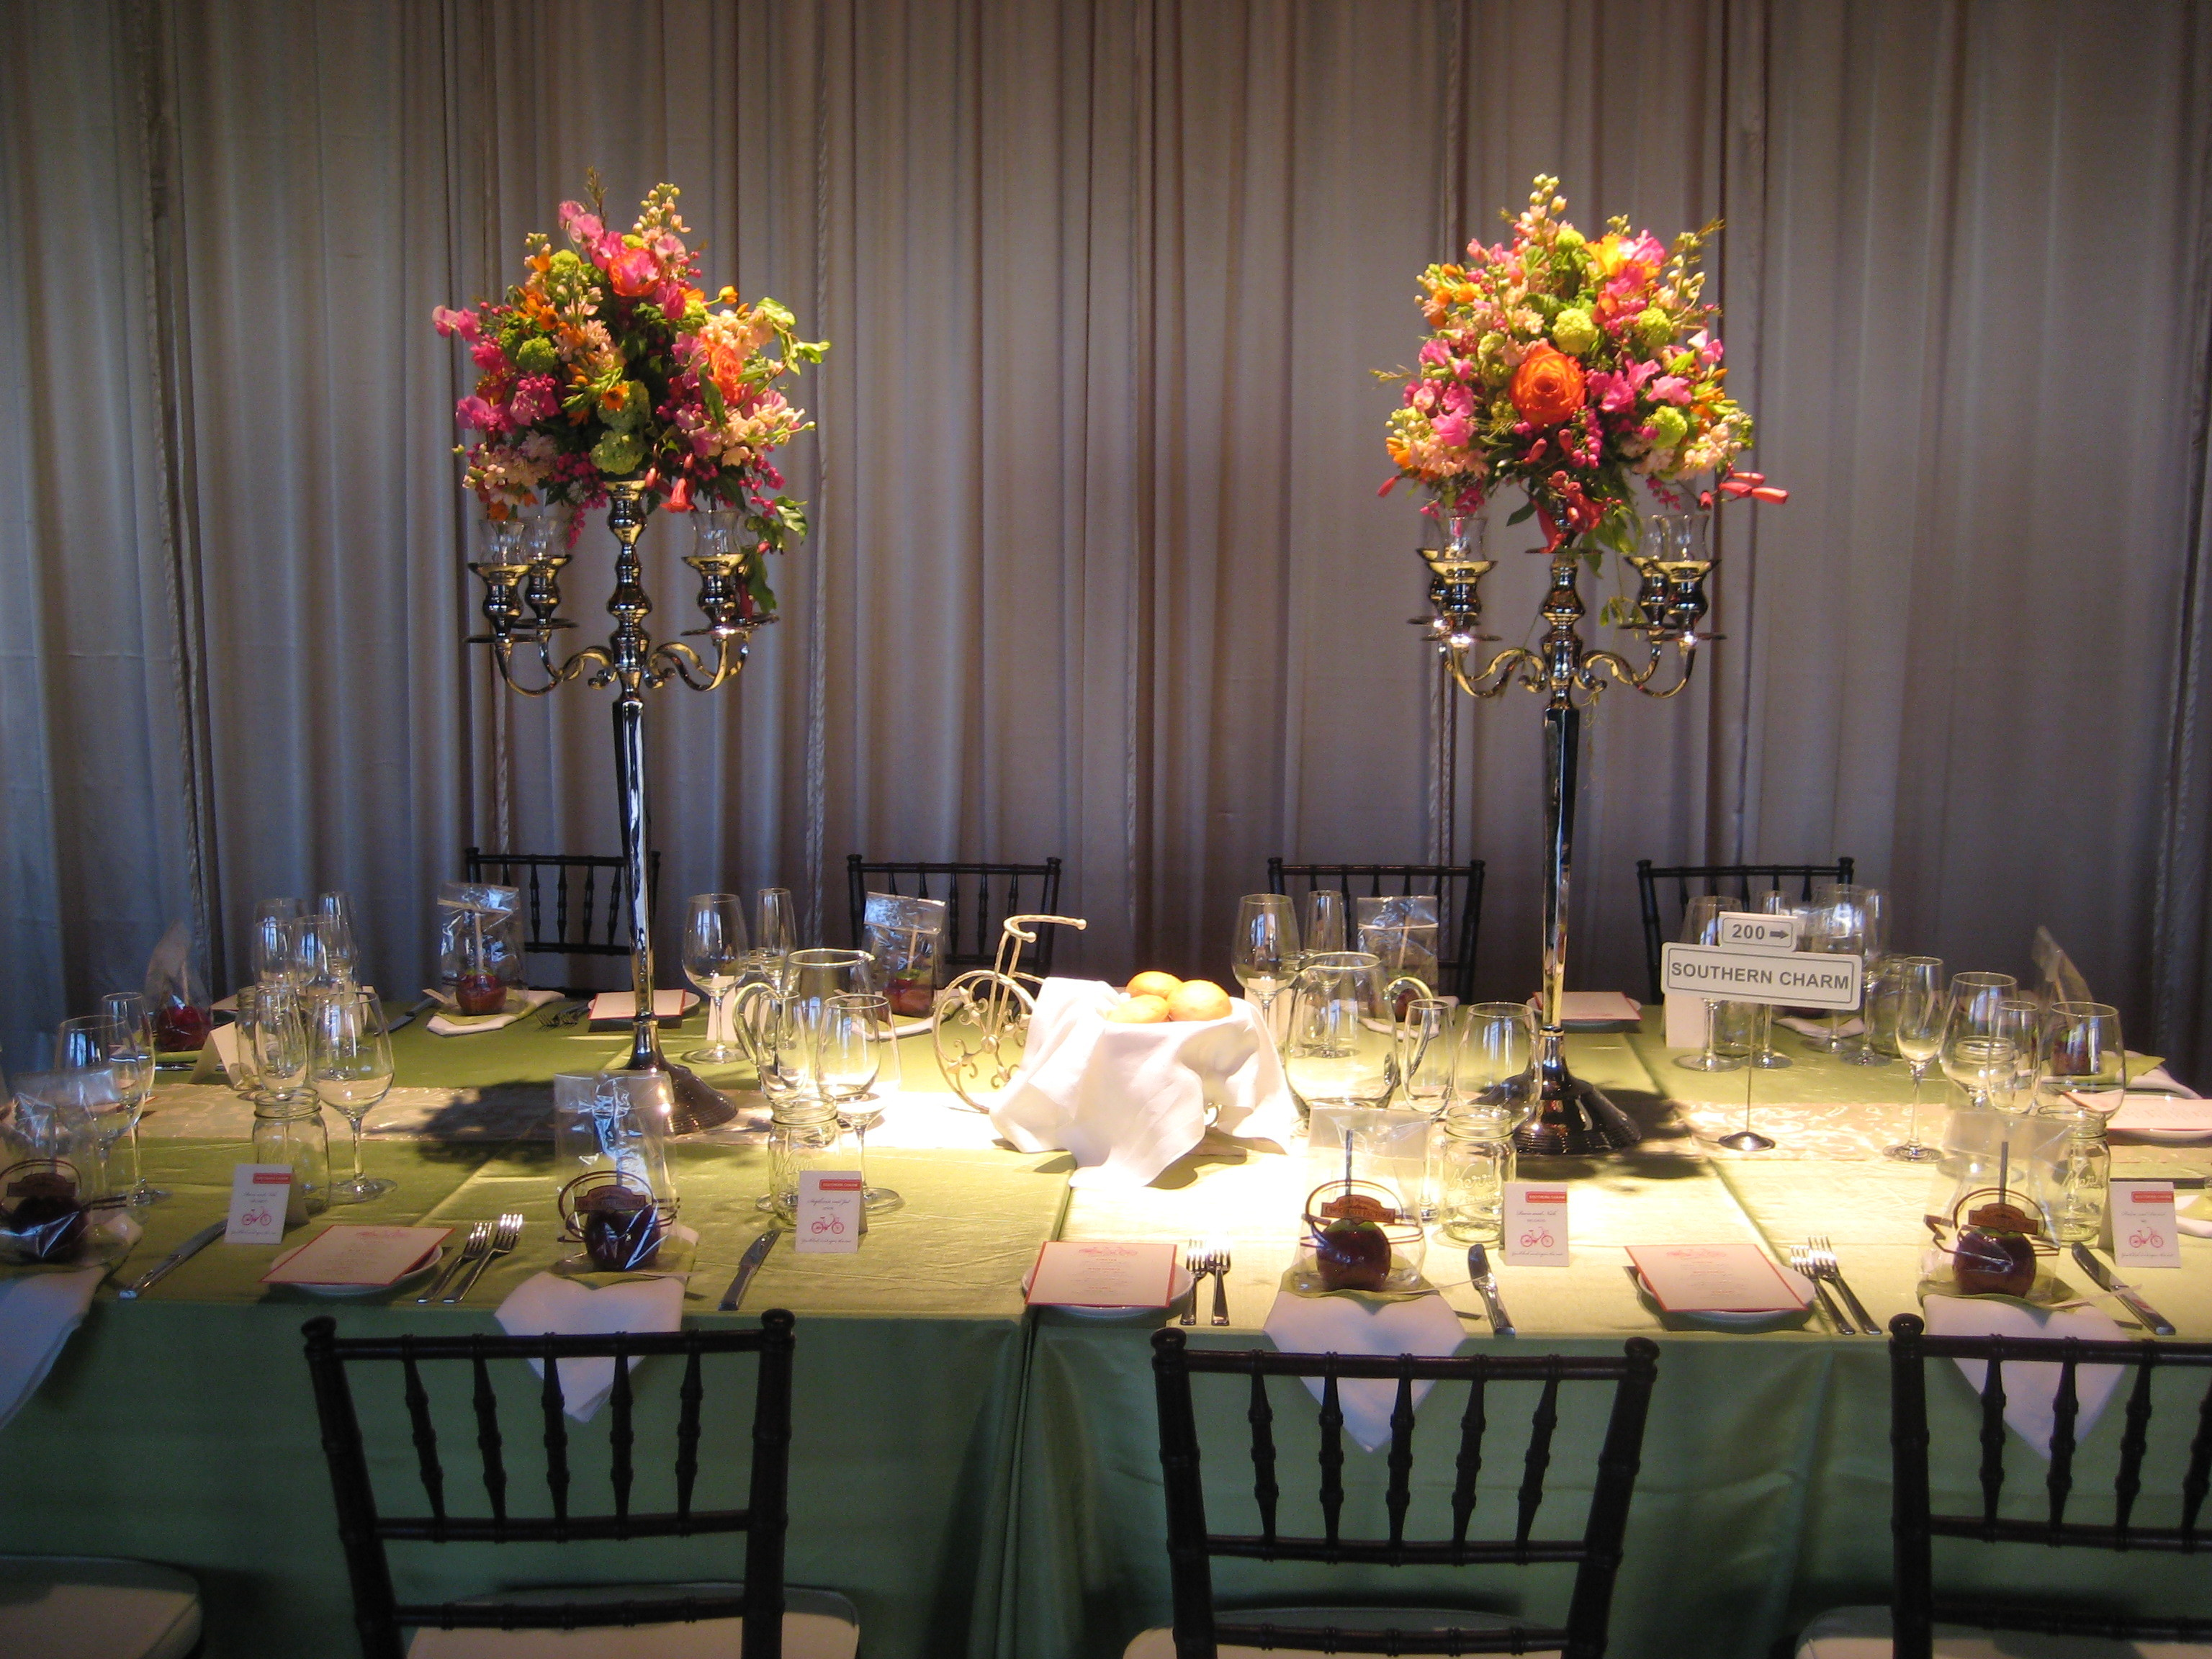 Flowers & Decor, Decor, green, Flowers, Table